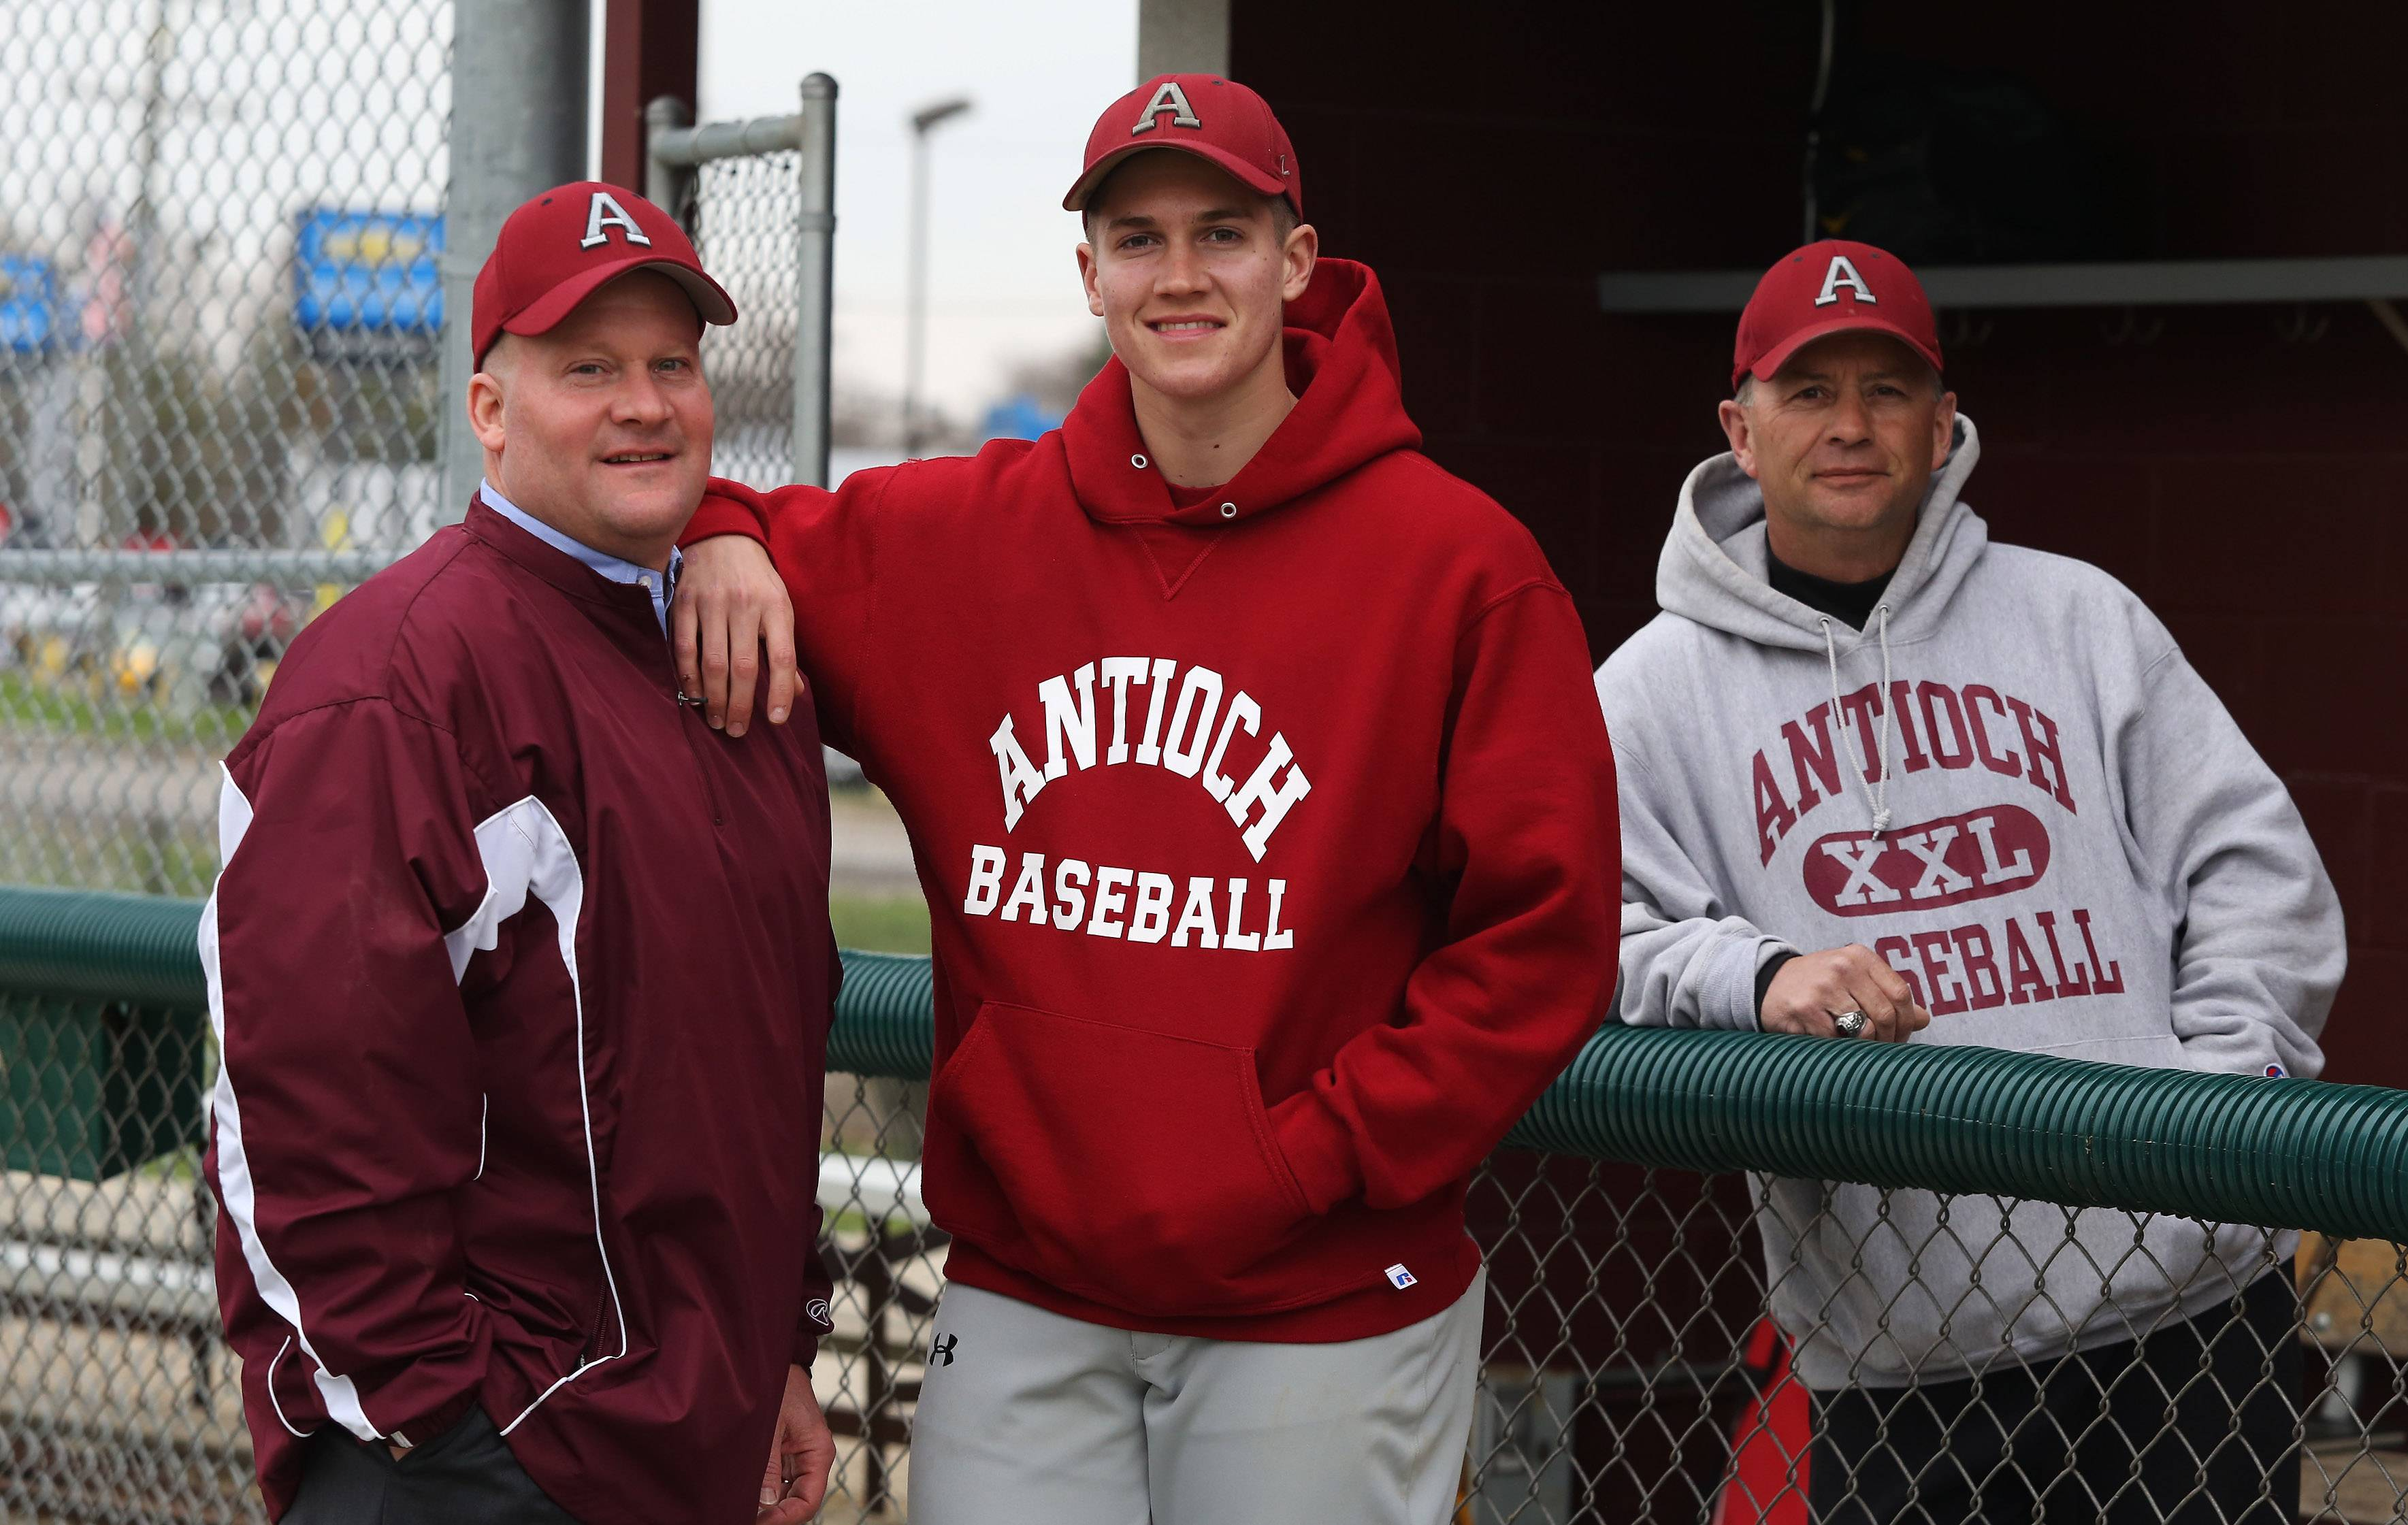 Craig Prather, left, with his son, Collin, who currently plays baseball at Antioch for coach Paul Petty. Craig also played baseball at Antioch, with Petty as his coach.